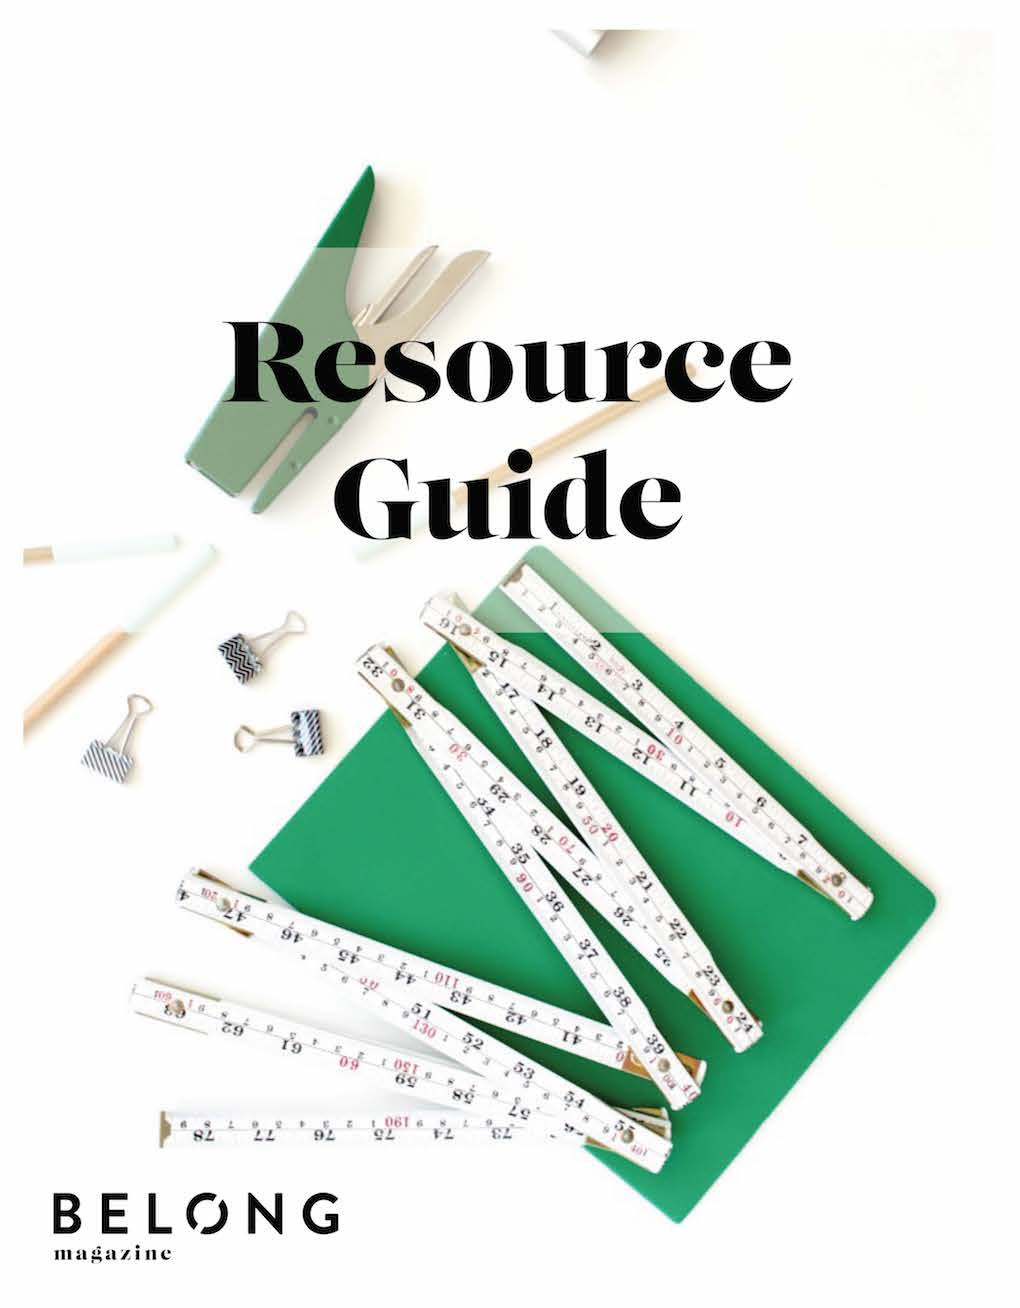 Resource Guide Cover photo.jpg